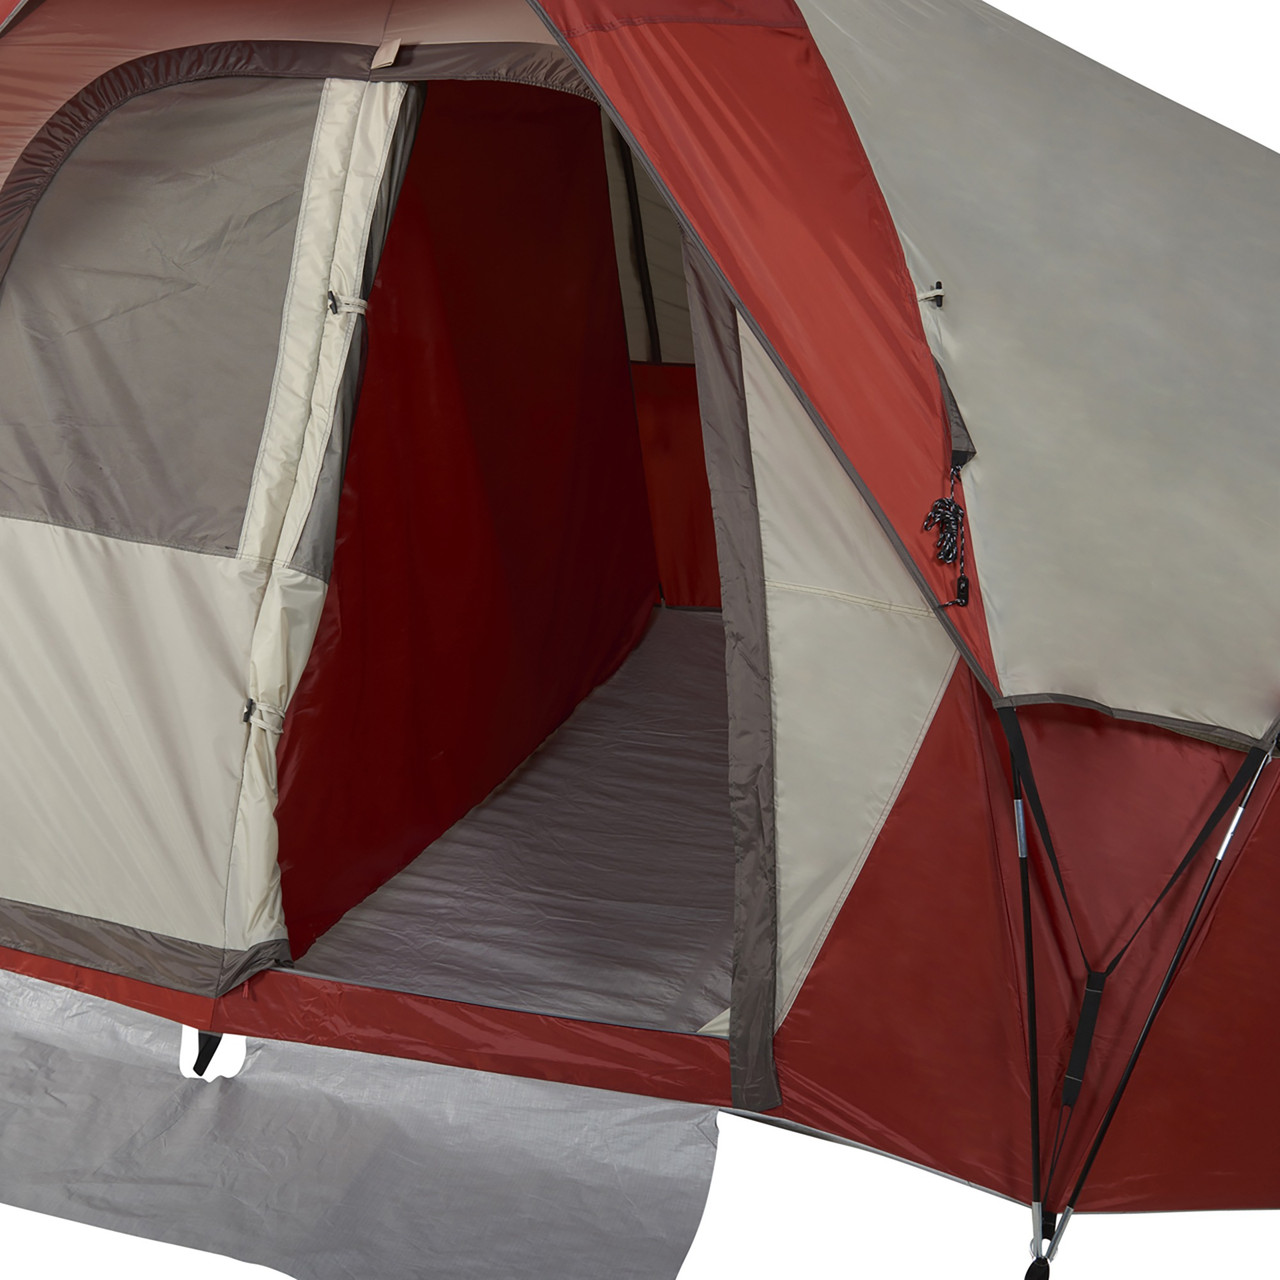 Wenzel Bristlecone 8 Person Dome Tent, showing front entrance